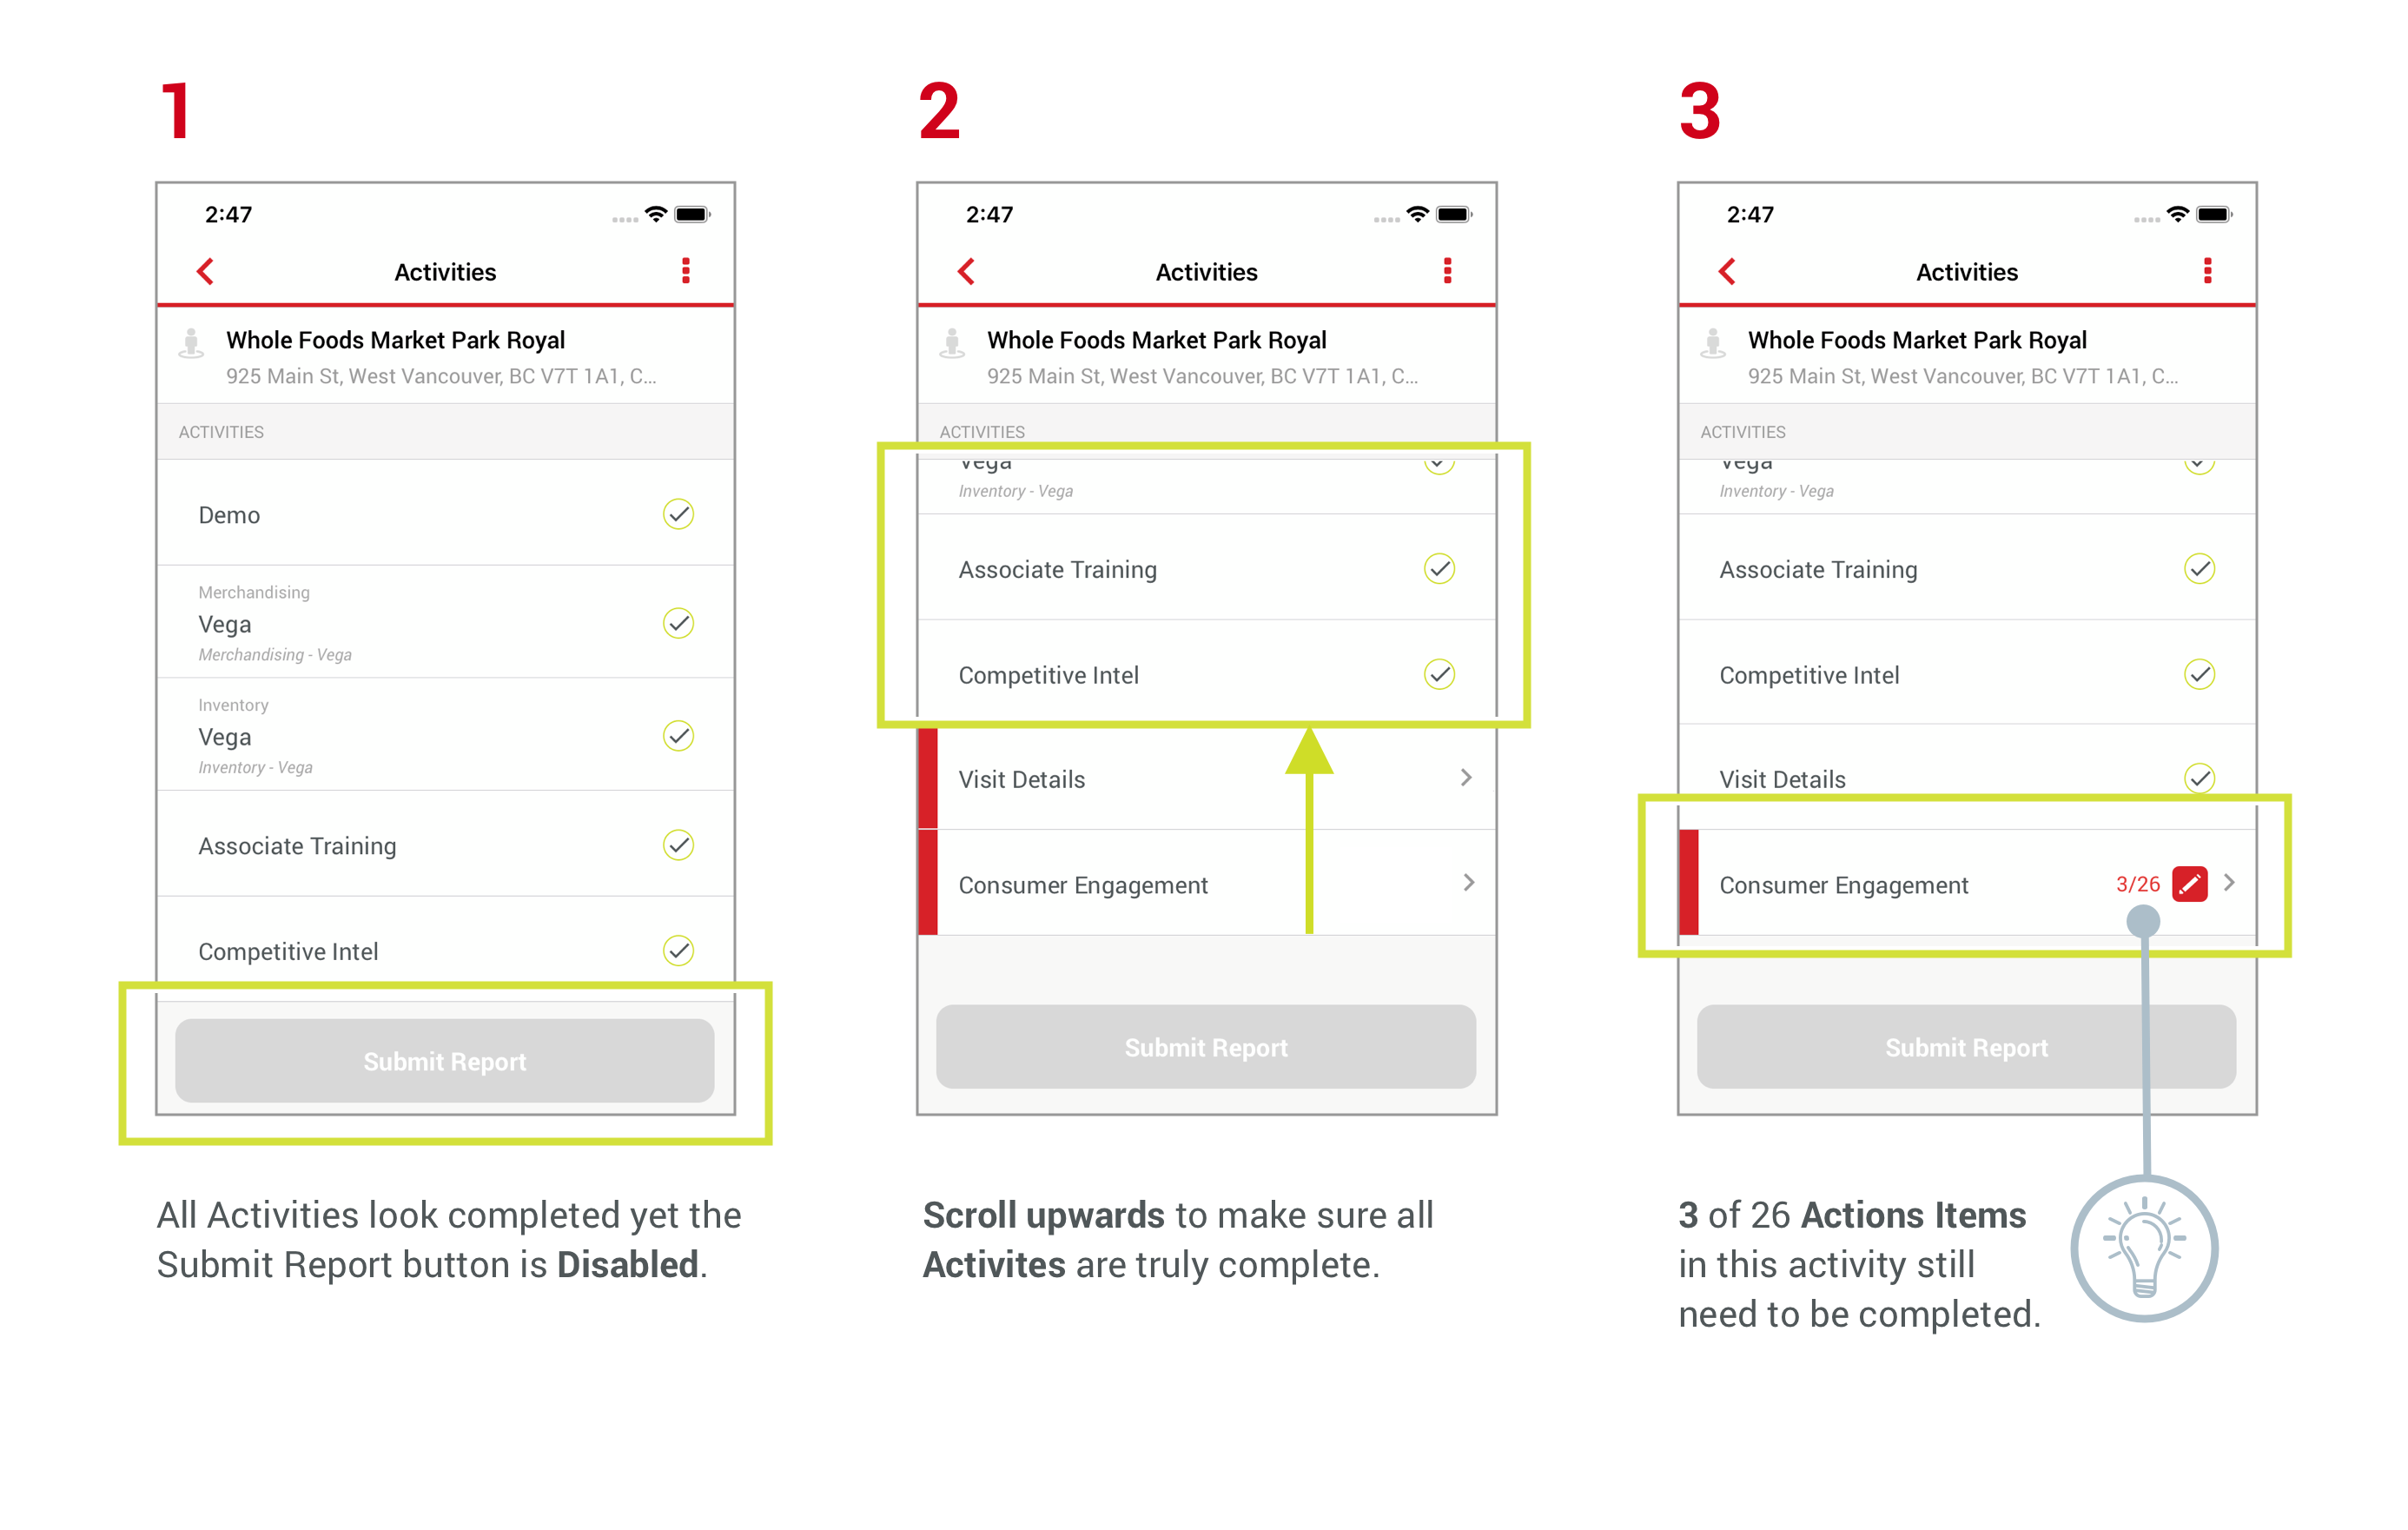 ThirdChannel_Zendesk_SubmitReport_Issues-Scroll.png